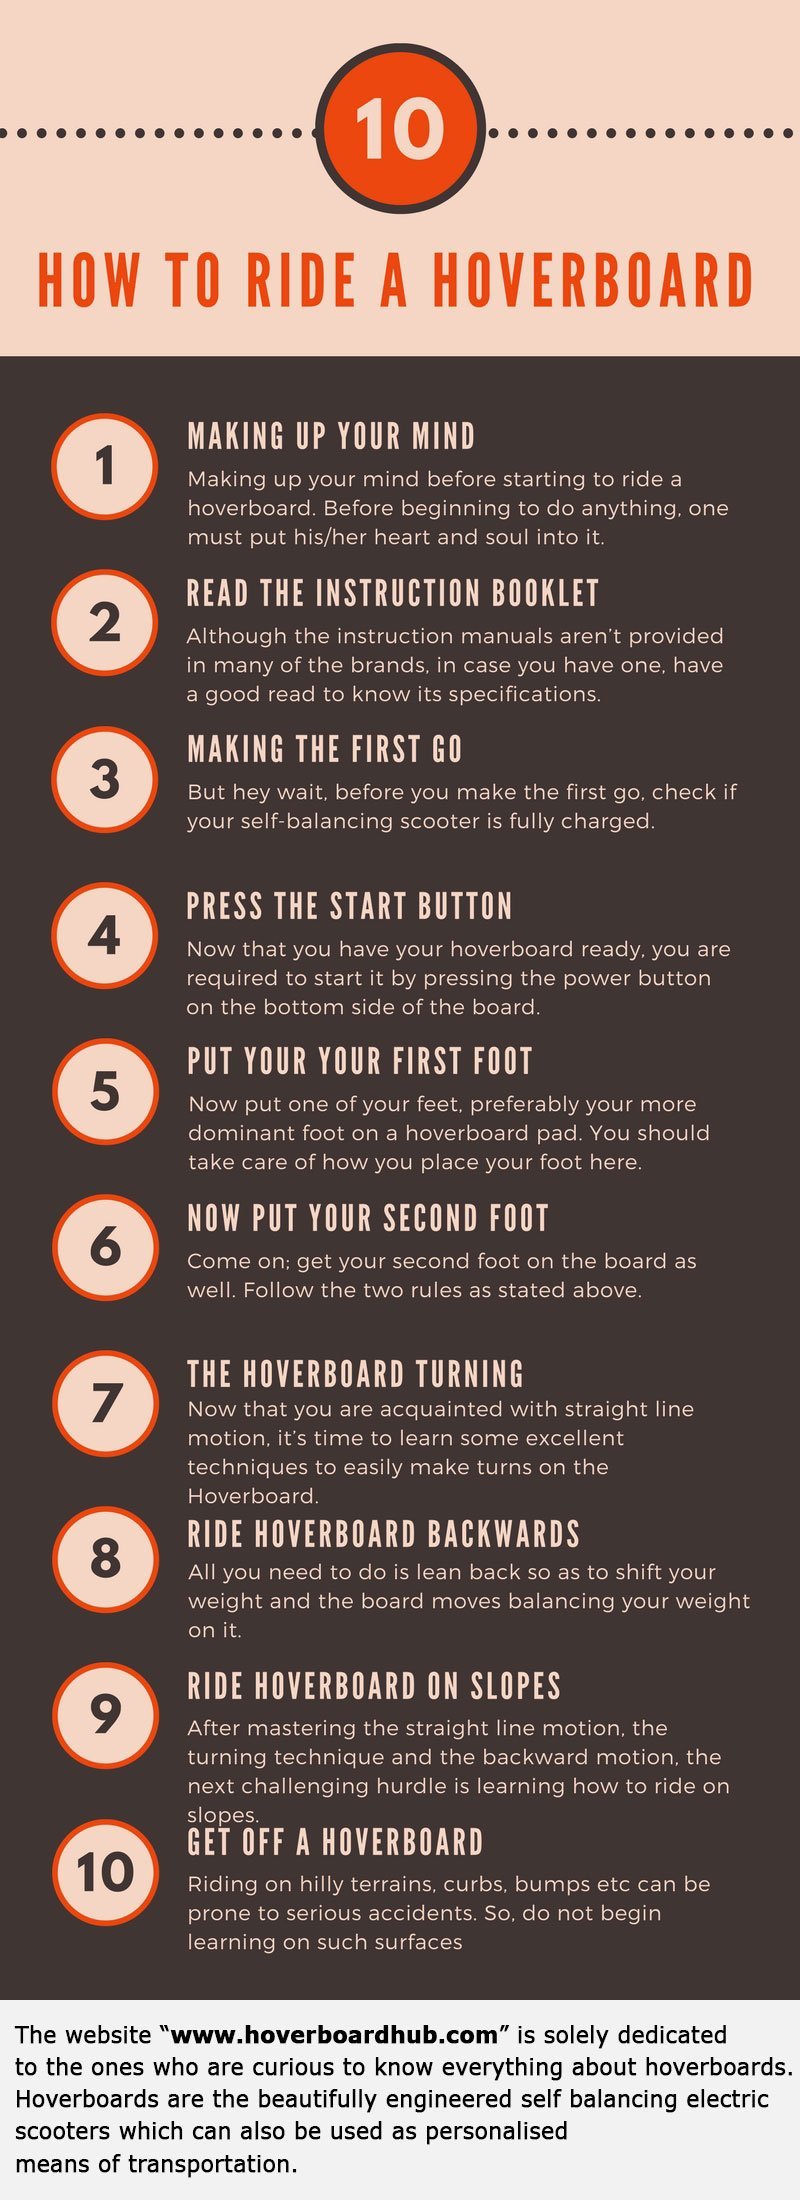 Hoverboarding Tips